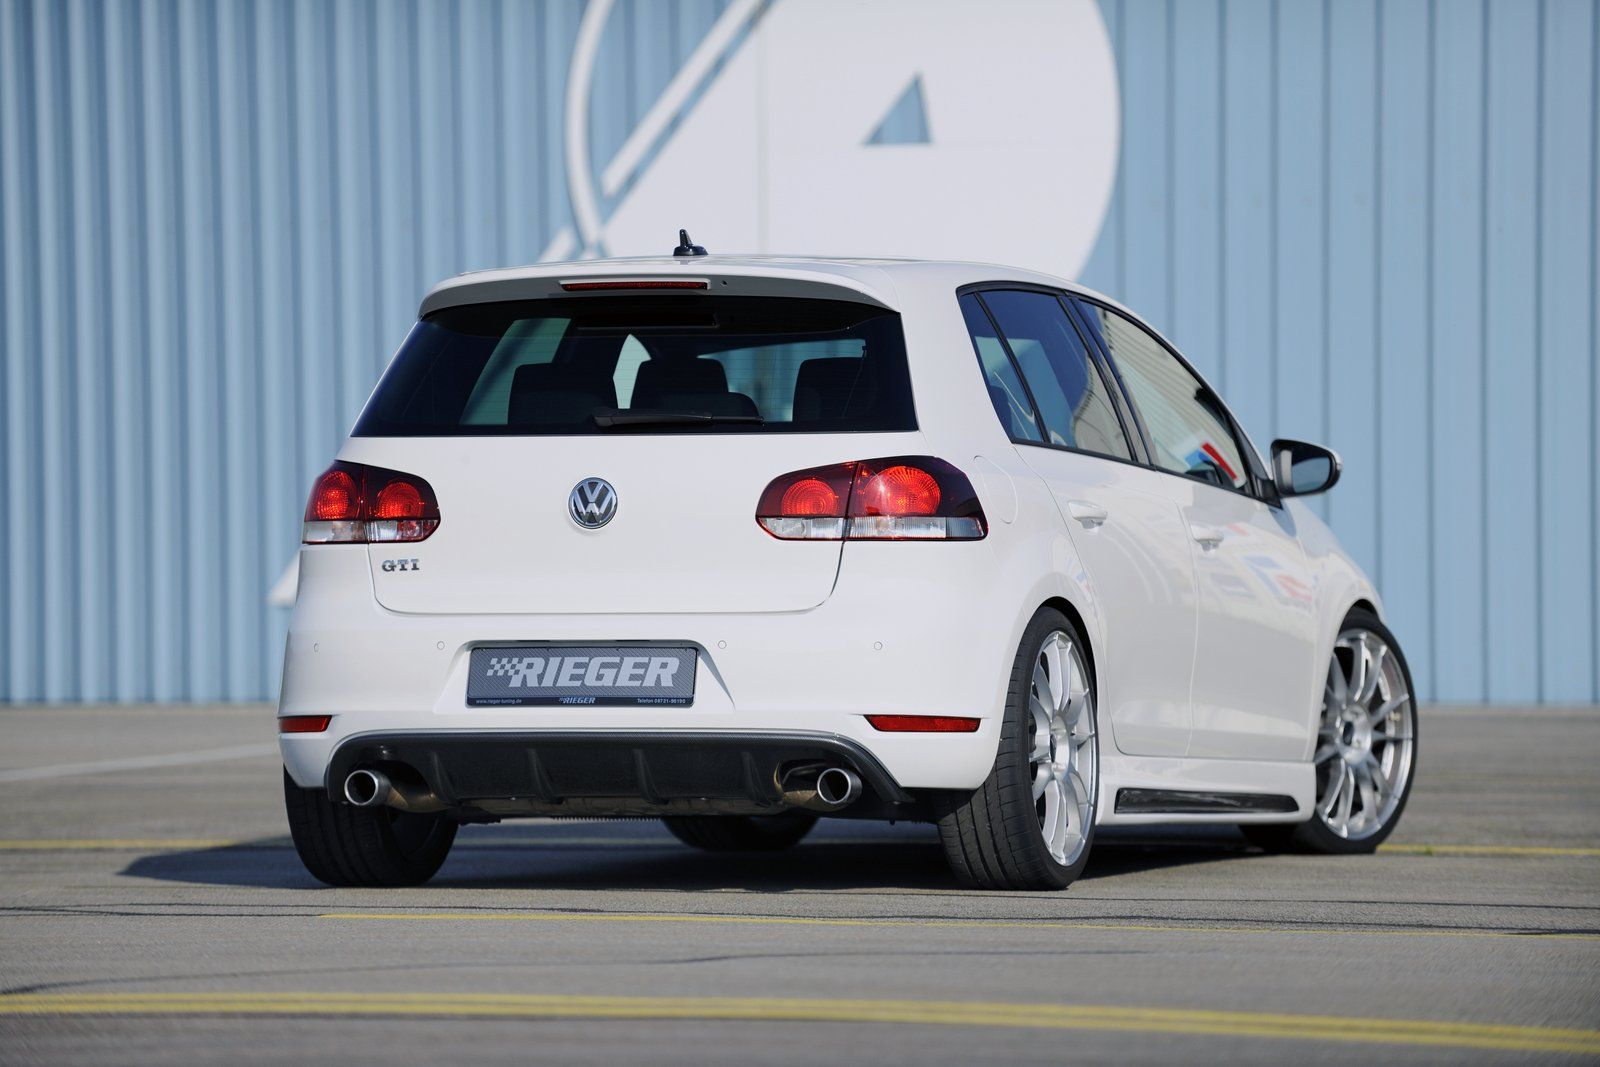 Vw Golf Mk6 Rieger 8 Vw Tuning Mag